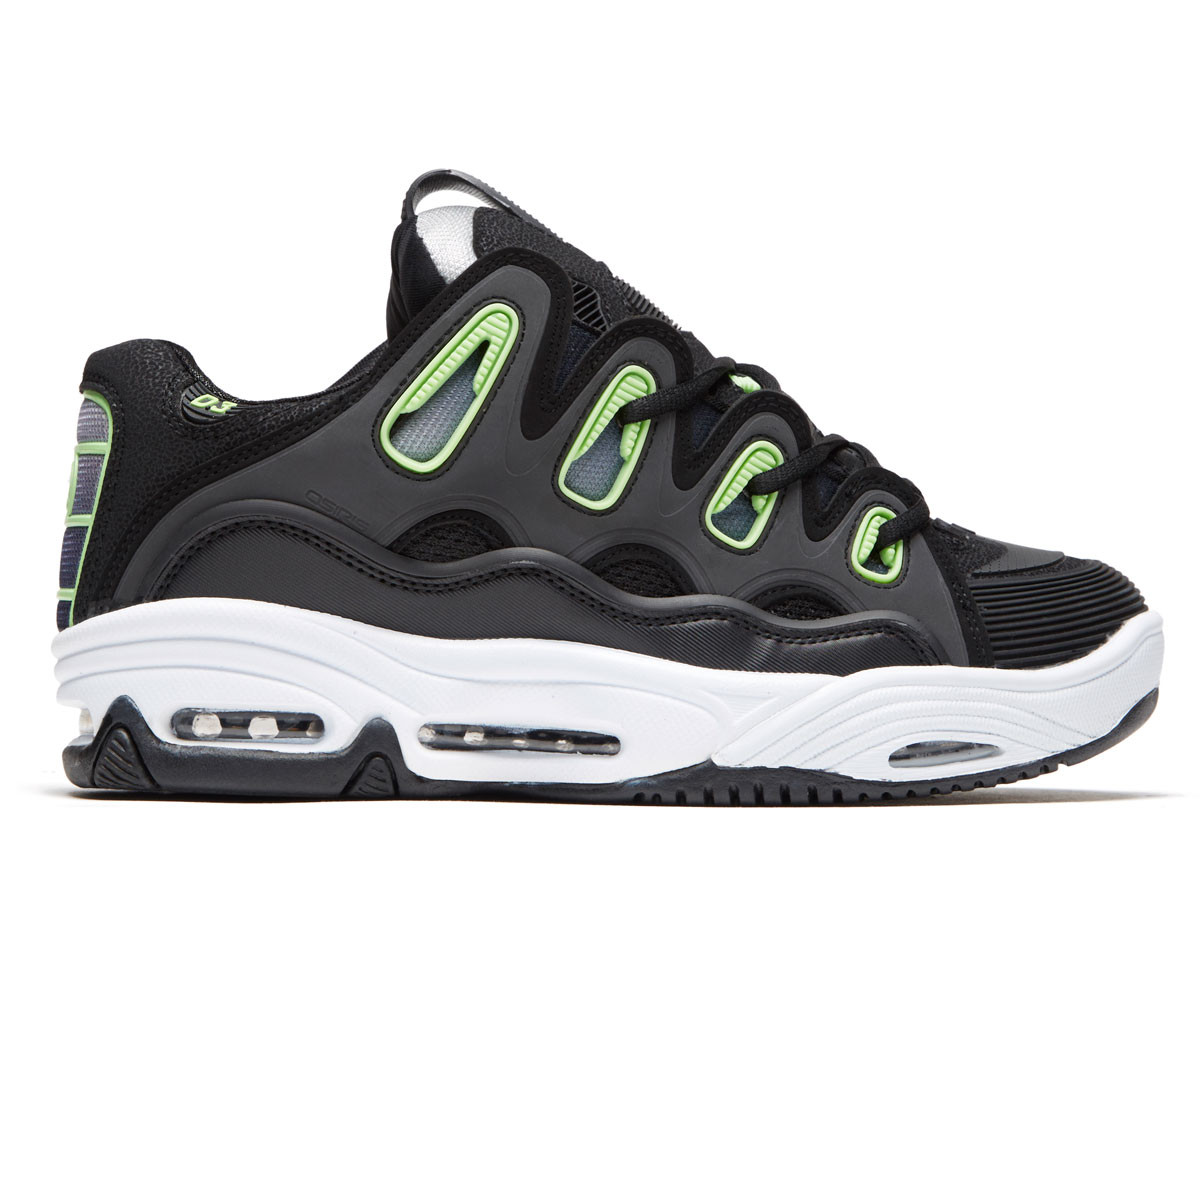 Osiris D3 2001 Shoes - Black White Green 8732e79ff0c